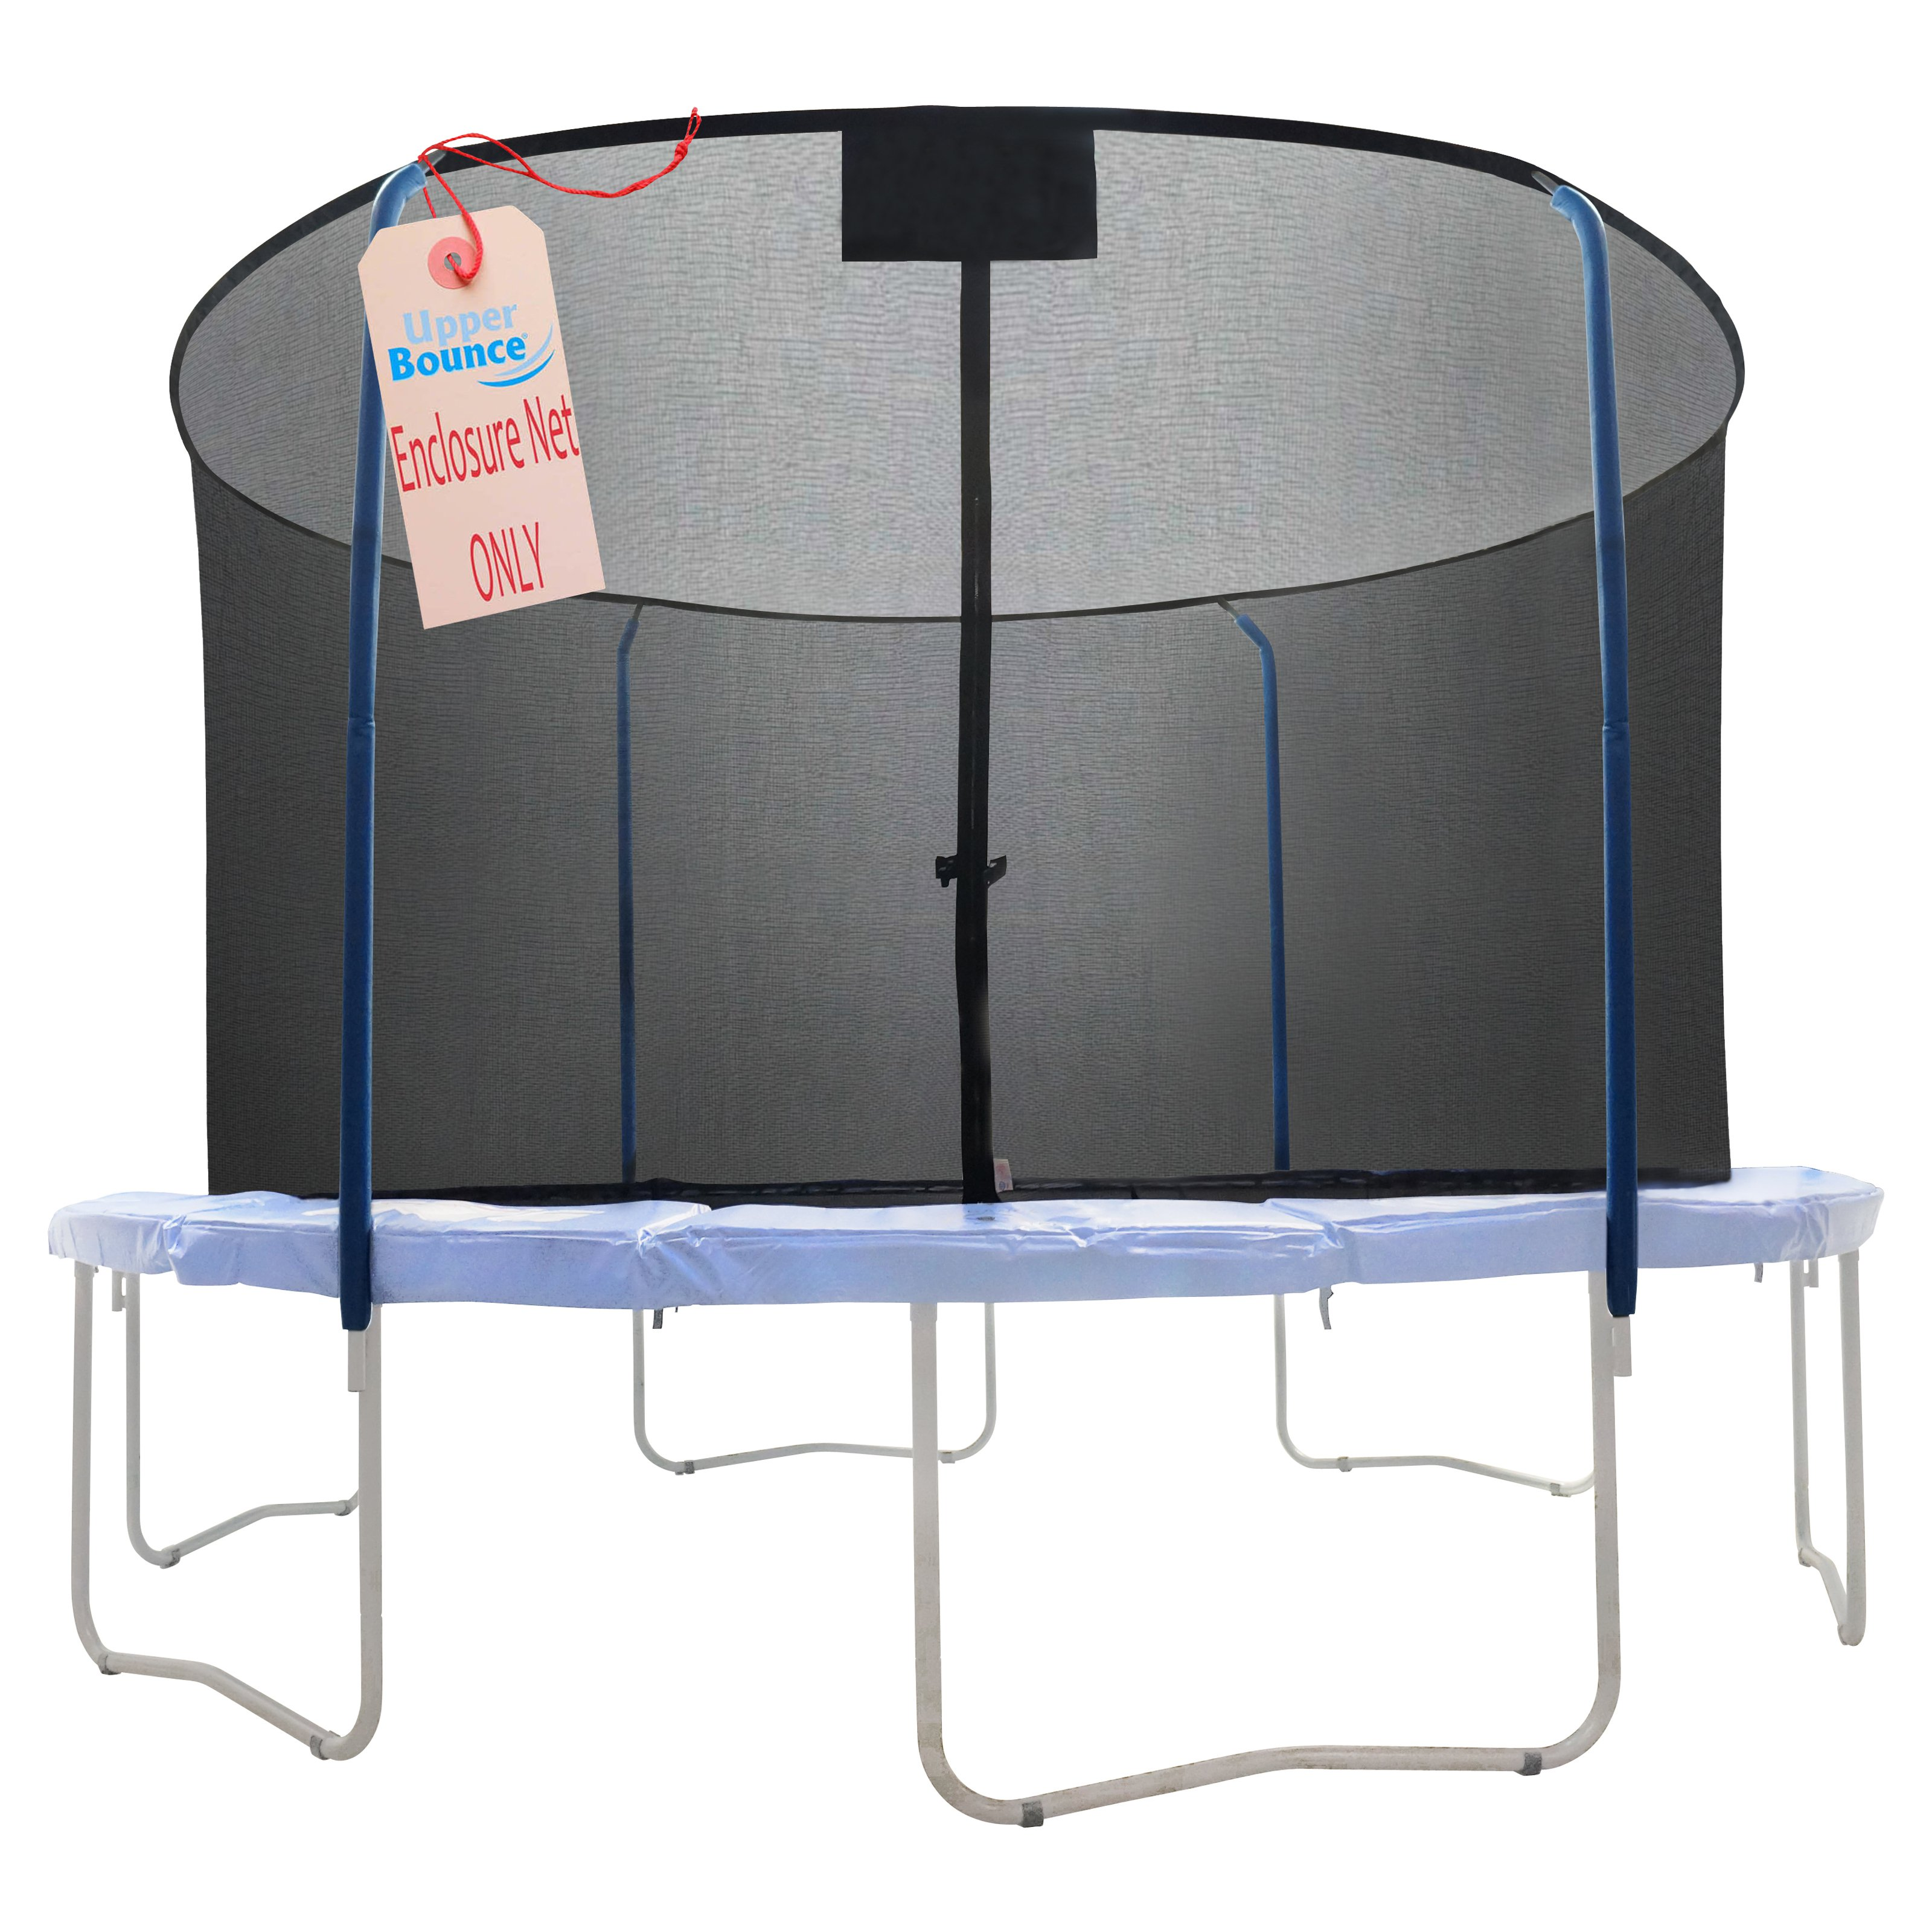 Upper Bounce 14 ft. Replacement Trampoline Safety Net